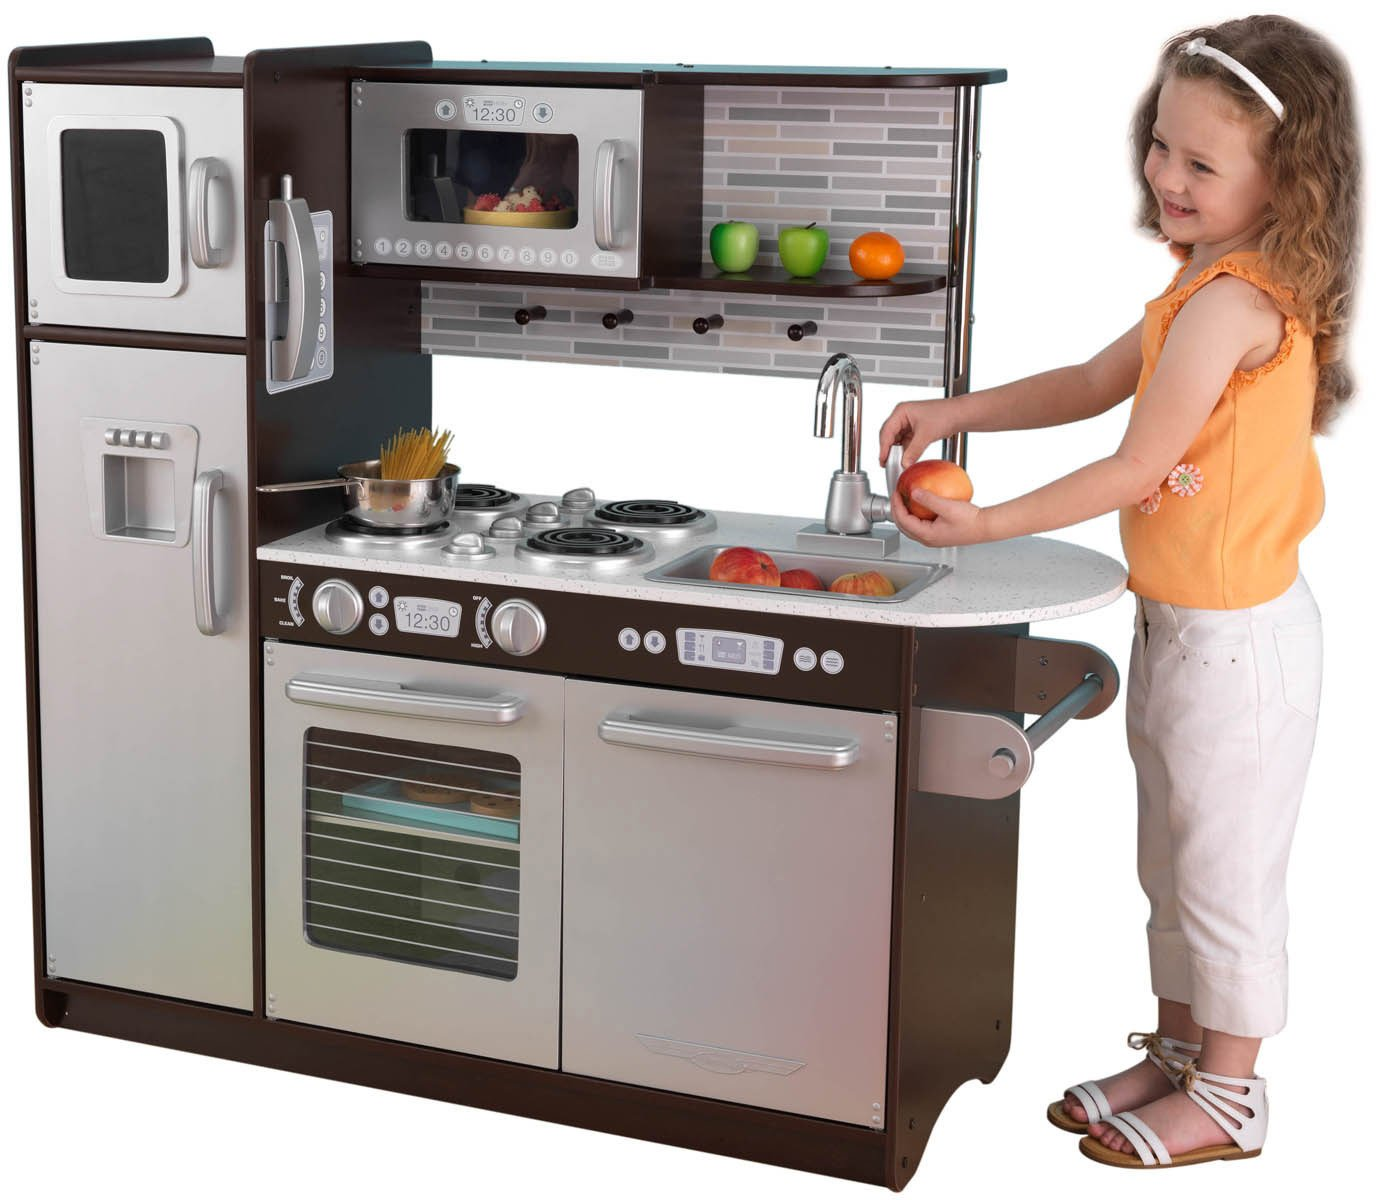 Diy Play Kitchens On Pinterest Play Kitchens Kid Kitchen And Entertainment Center